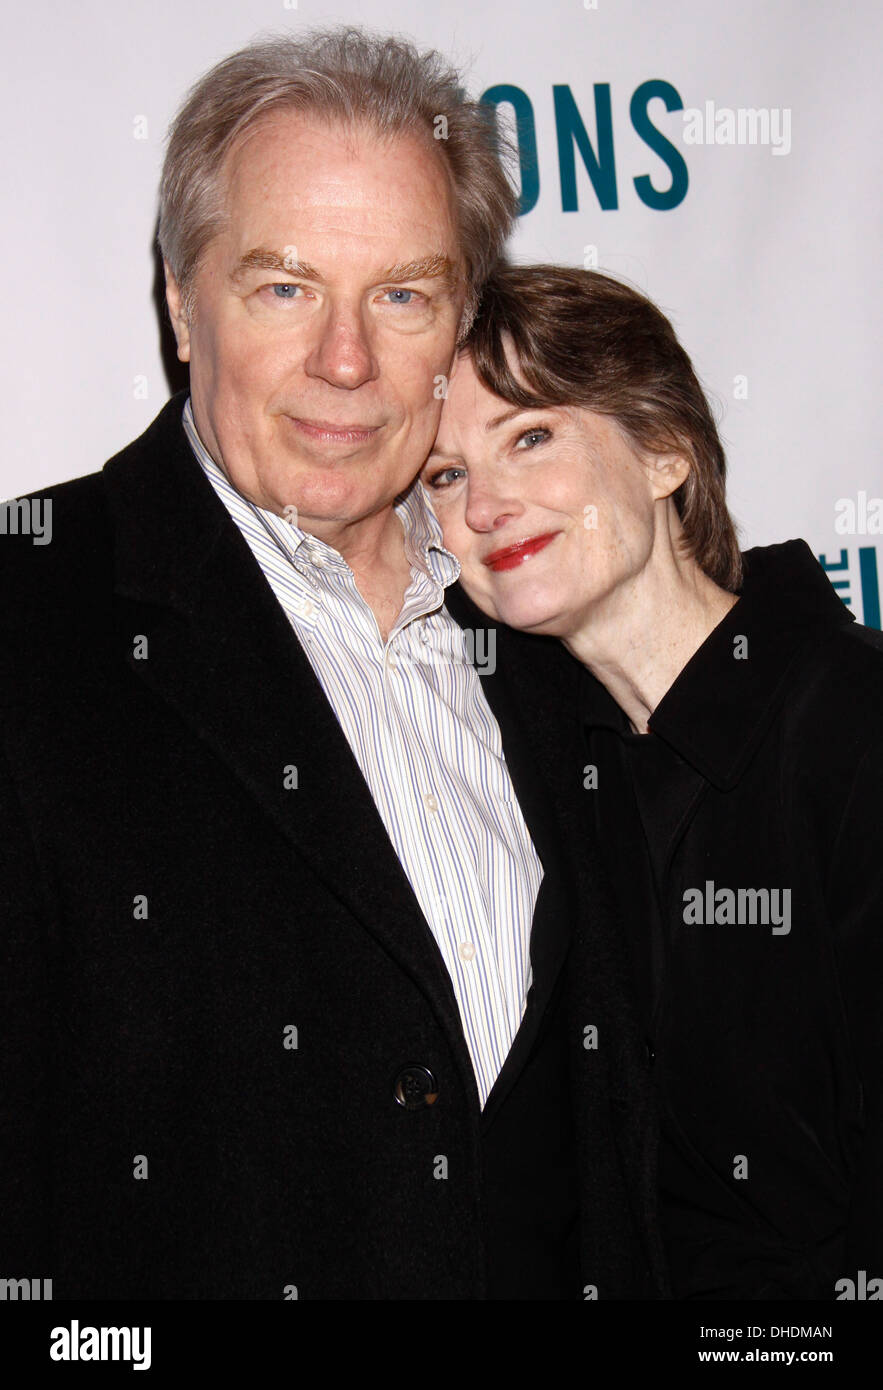 Michael McKean and Annette O'Toole Broadway opening night of 'The Lyons' at Cort Theatre – Arrivals New York City USA – Stock Photo